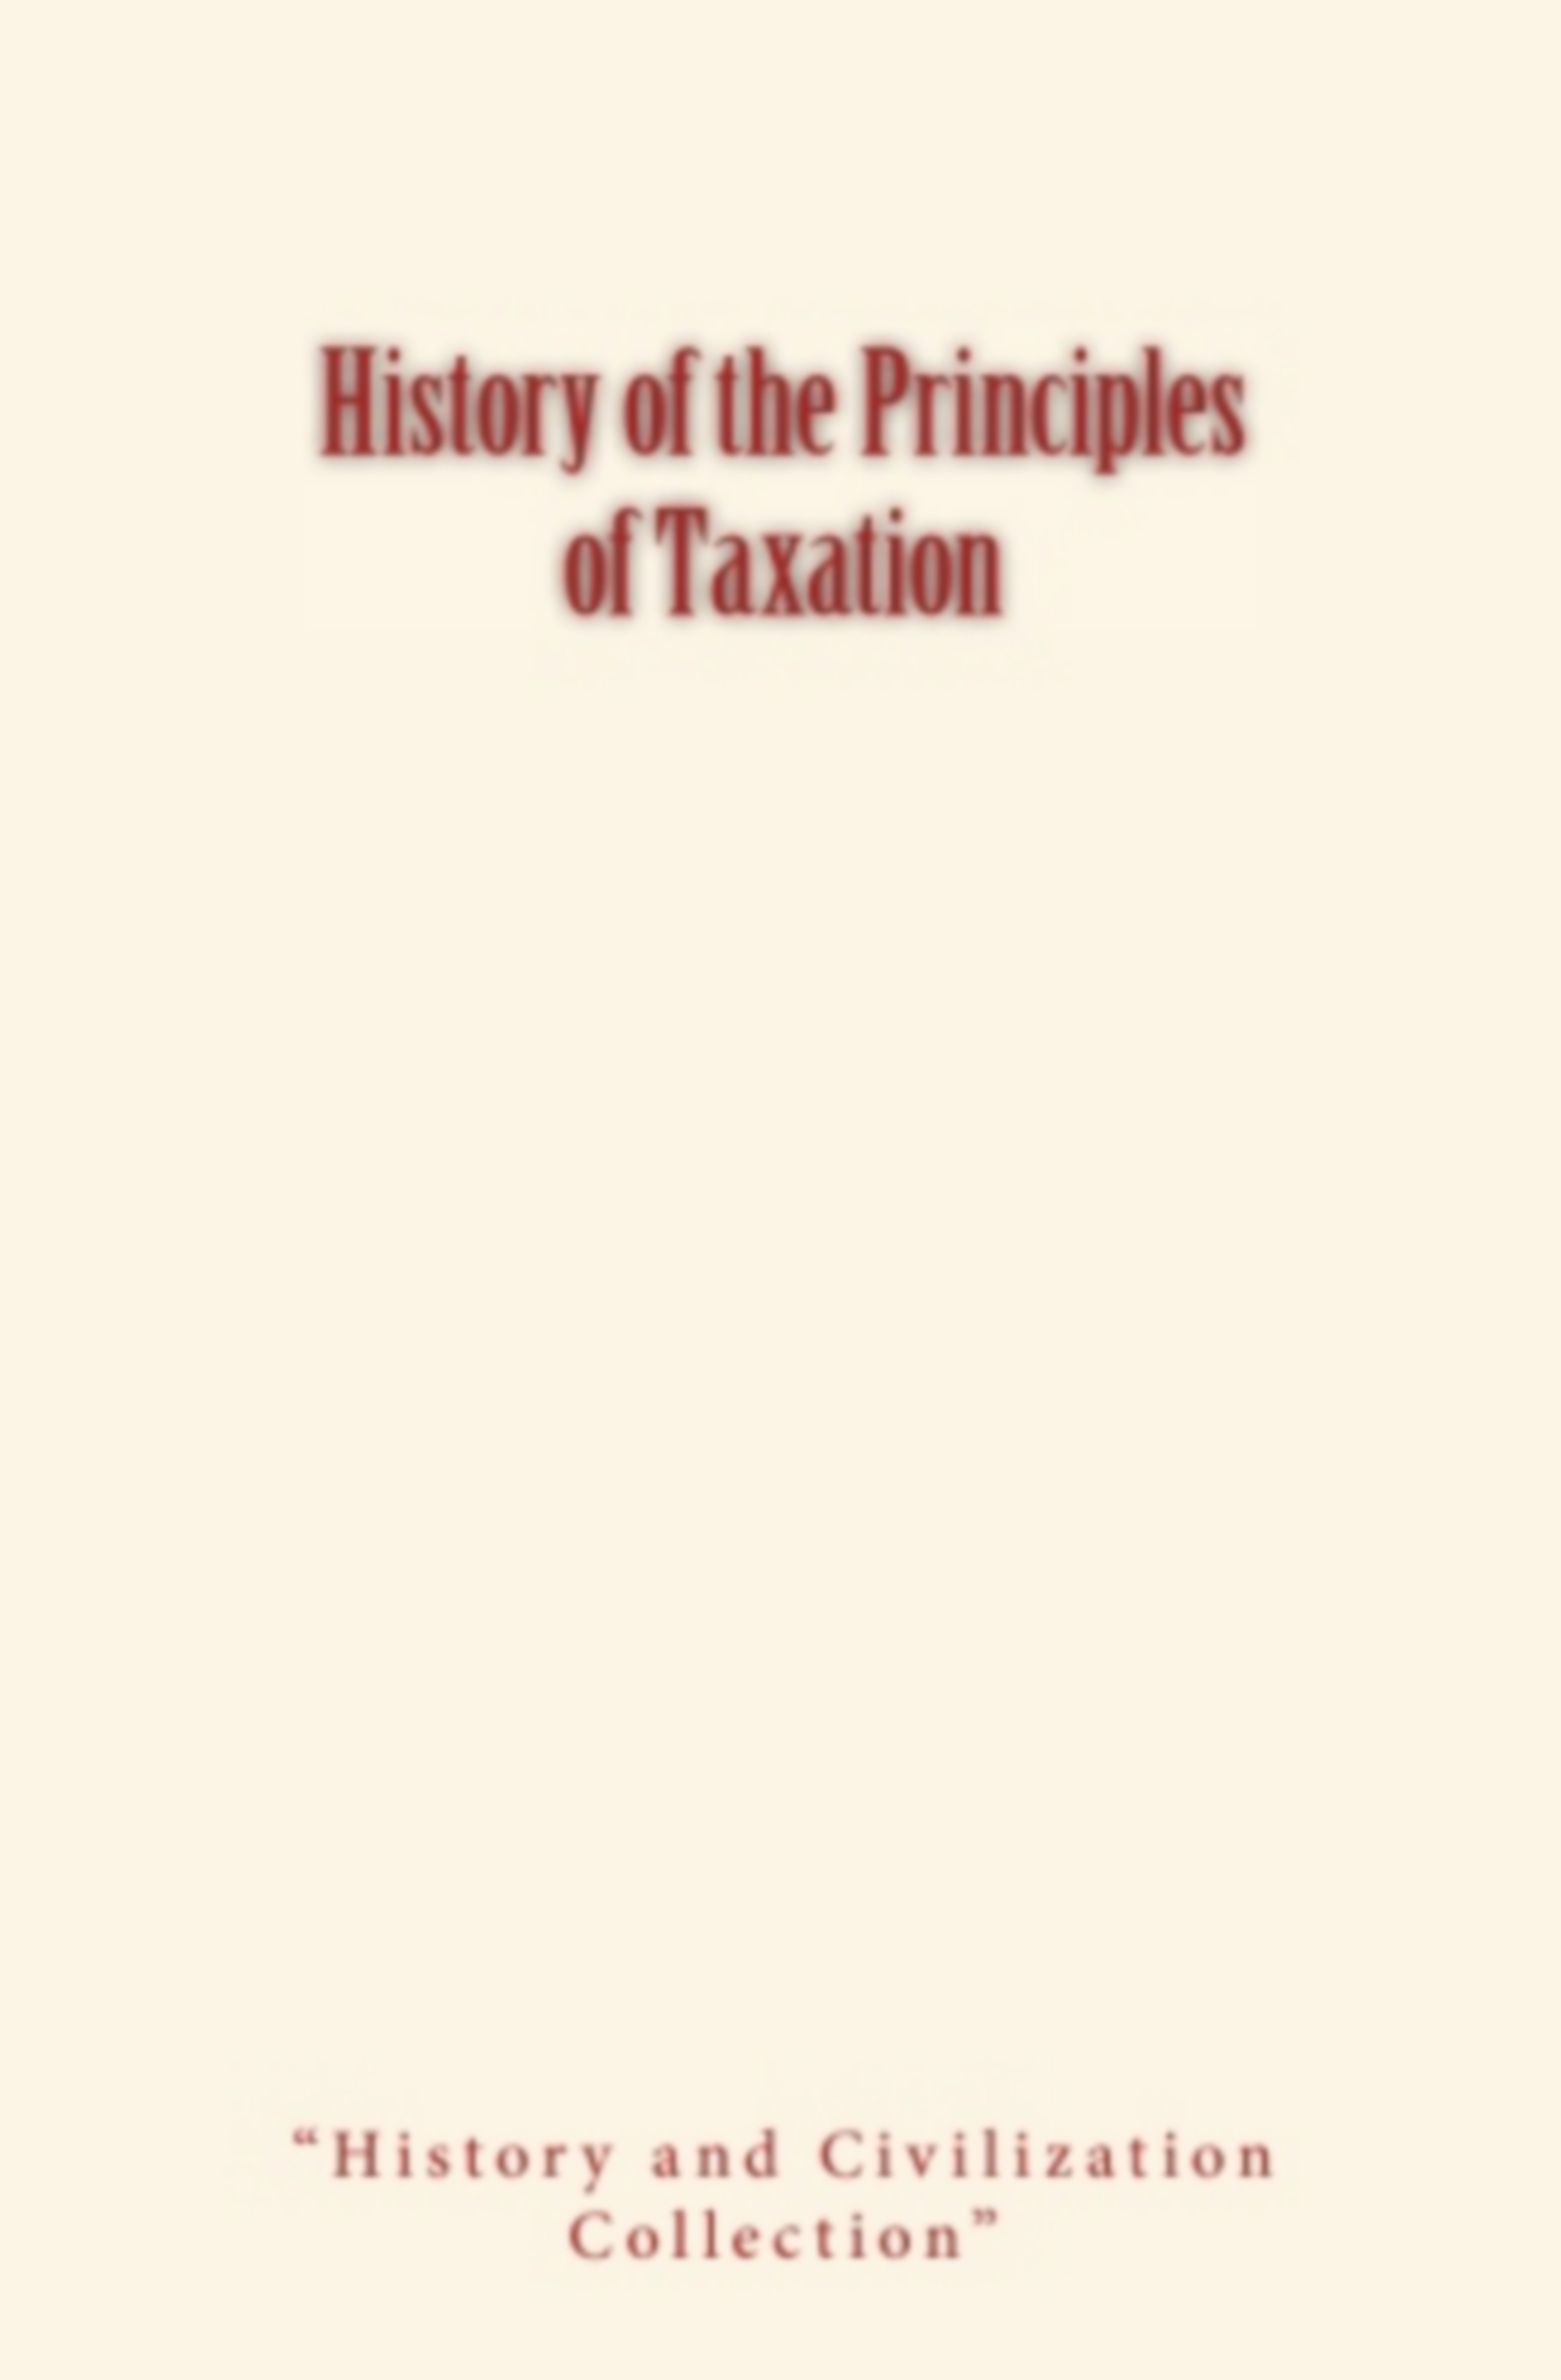 History of the Principles of Taxation